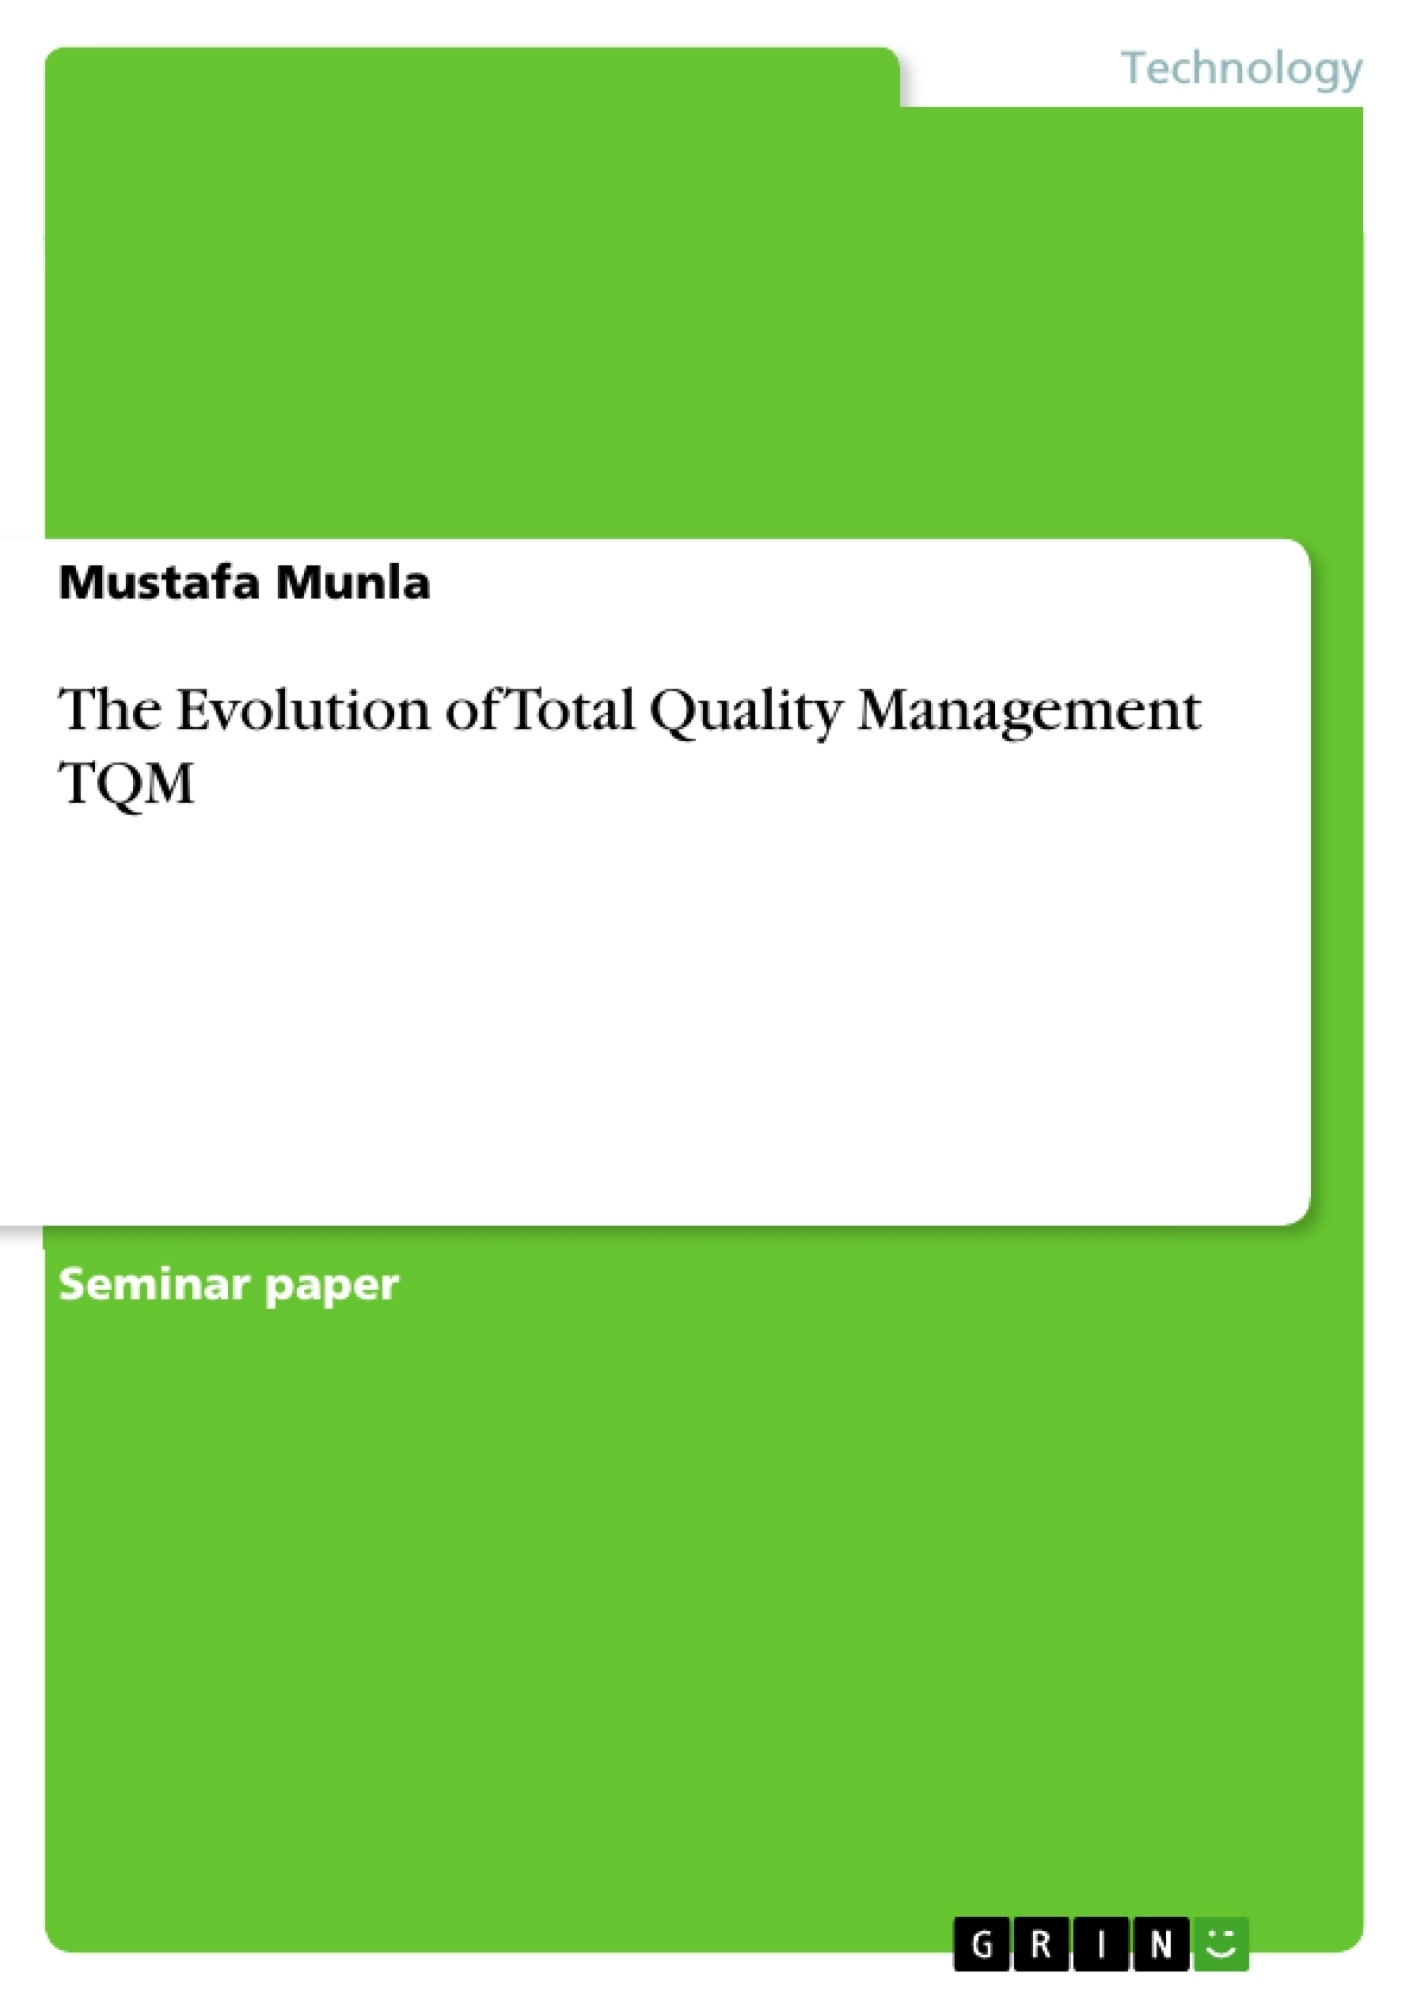 Title: The Evolution of Total Quality Management TQM